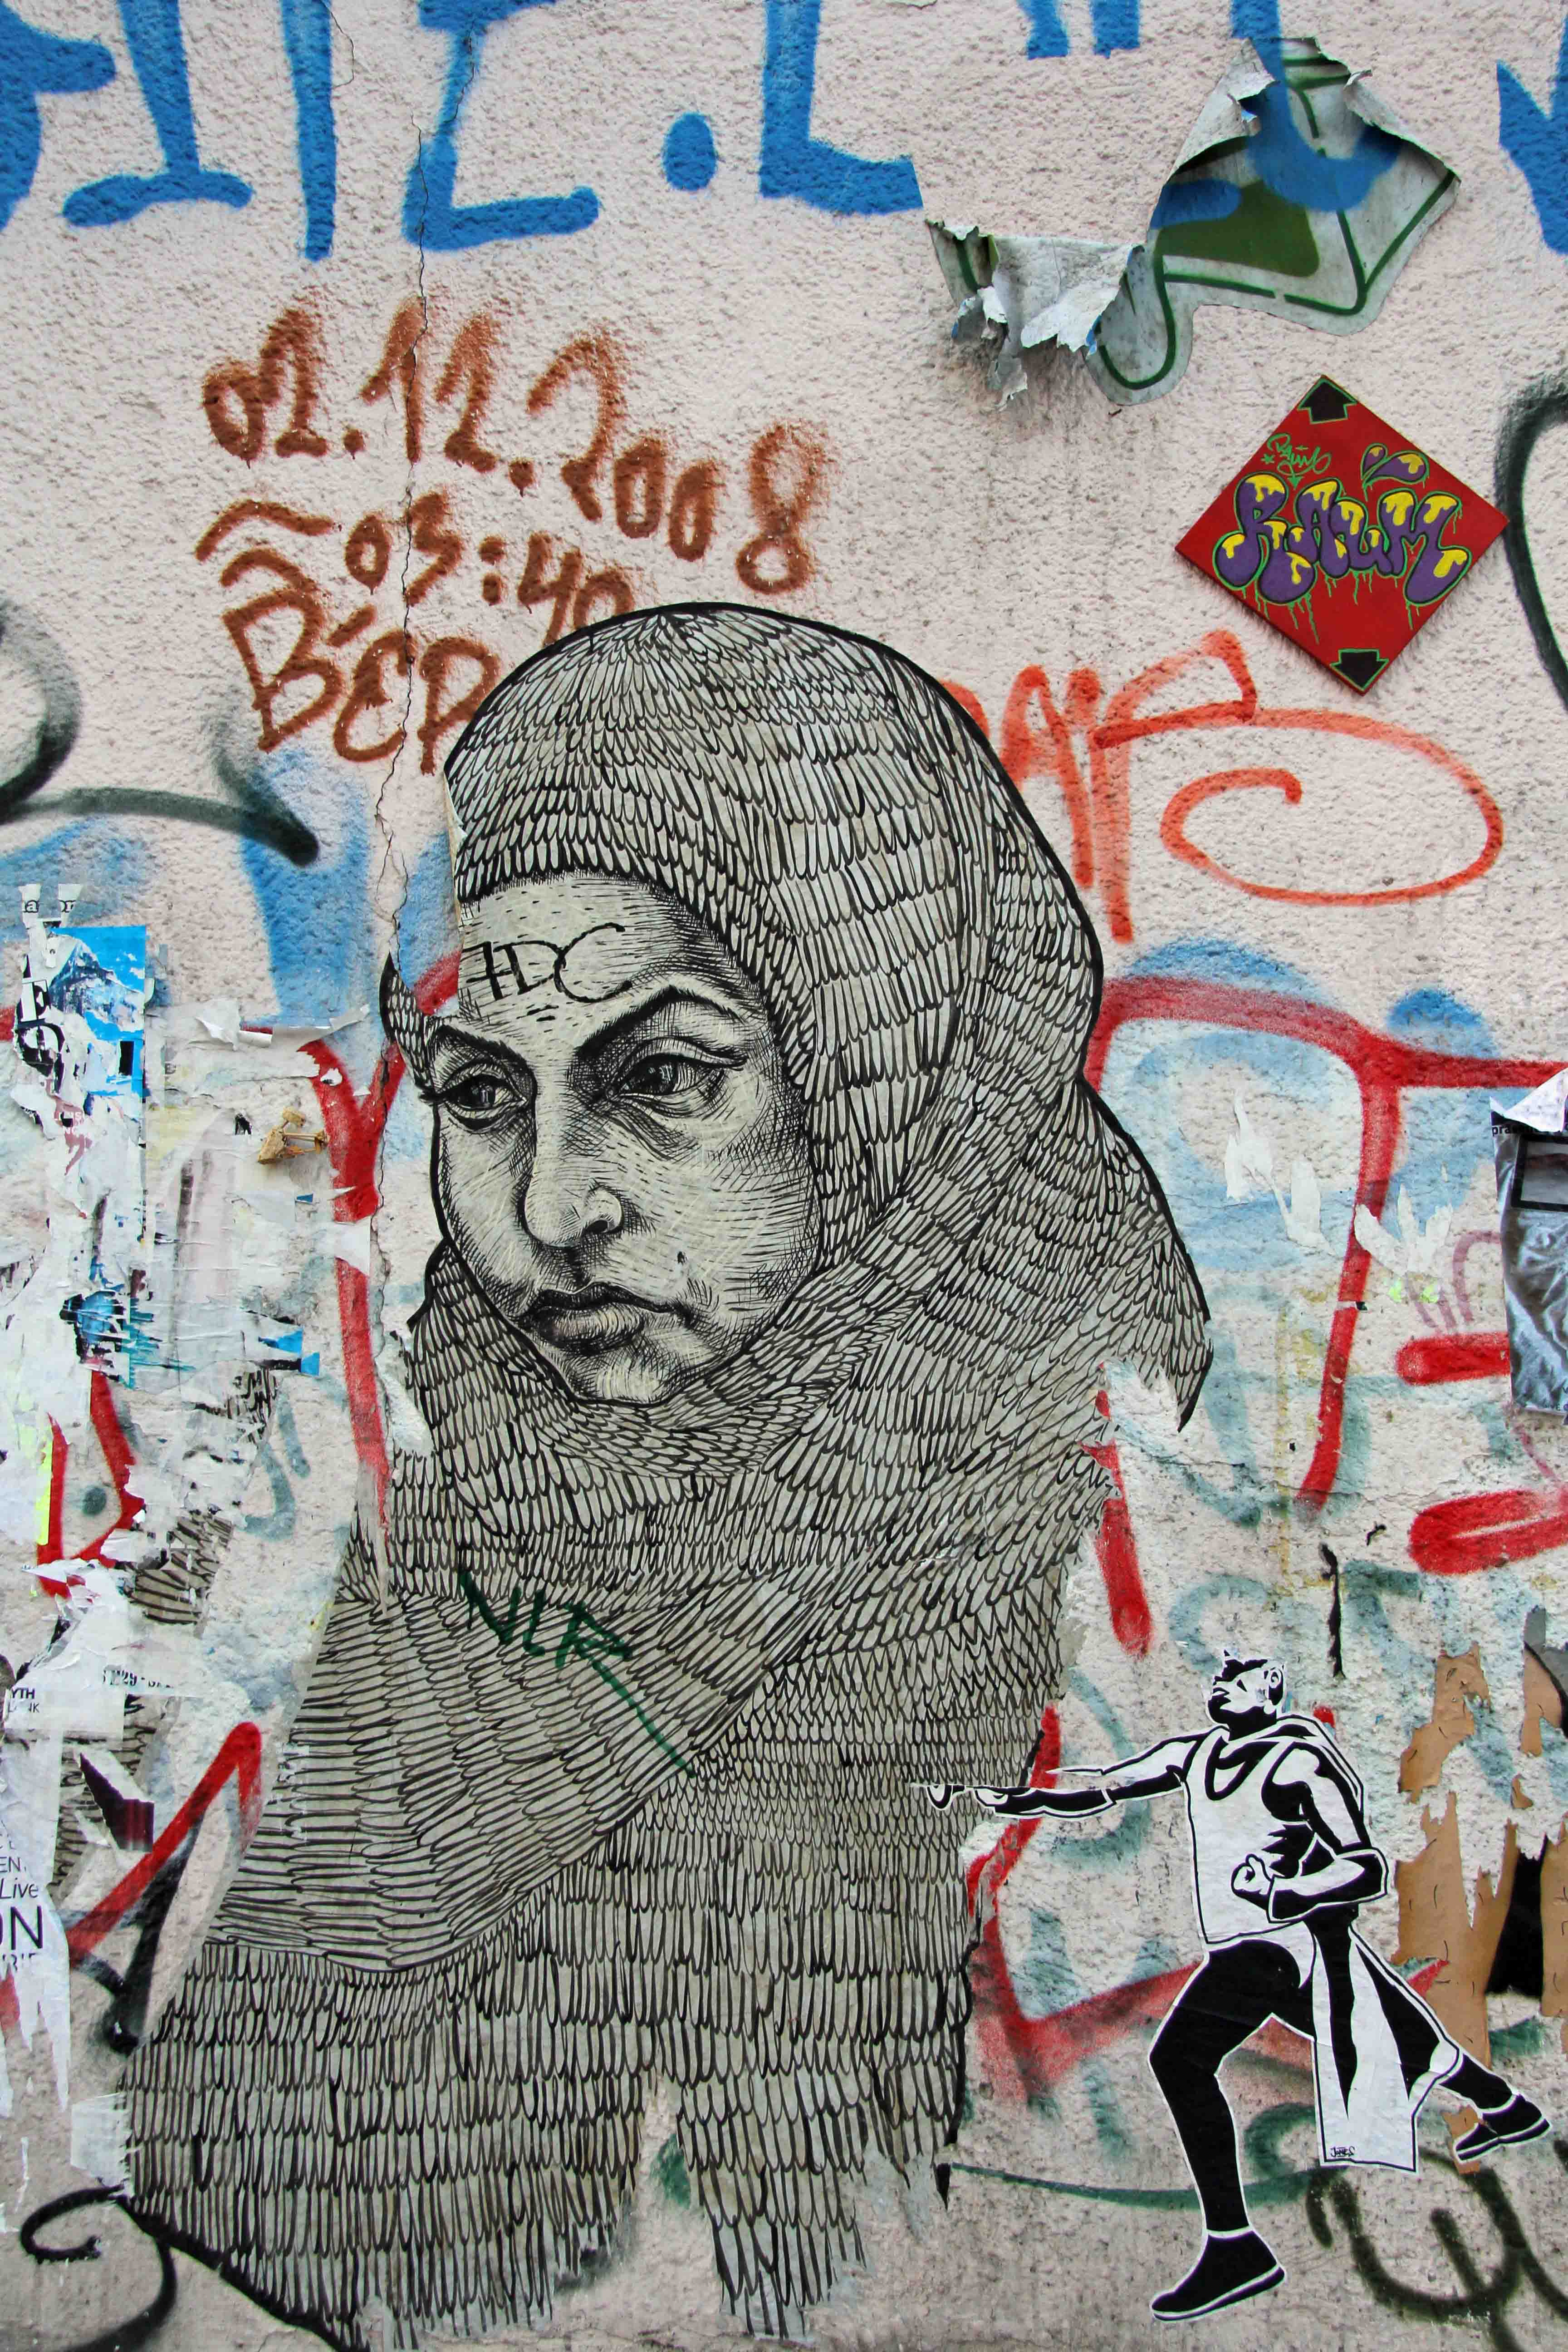 Hijab - Street Art by Unkown Artist in Berlin